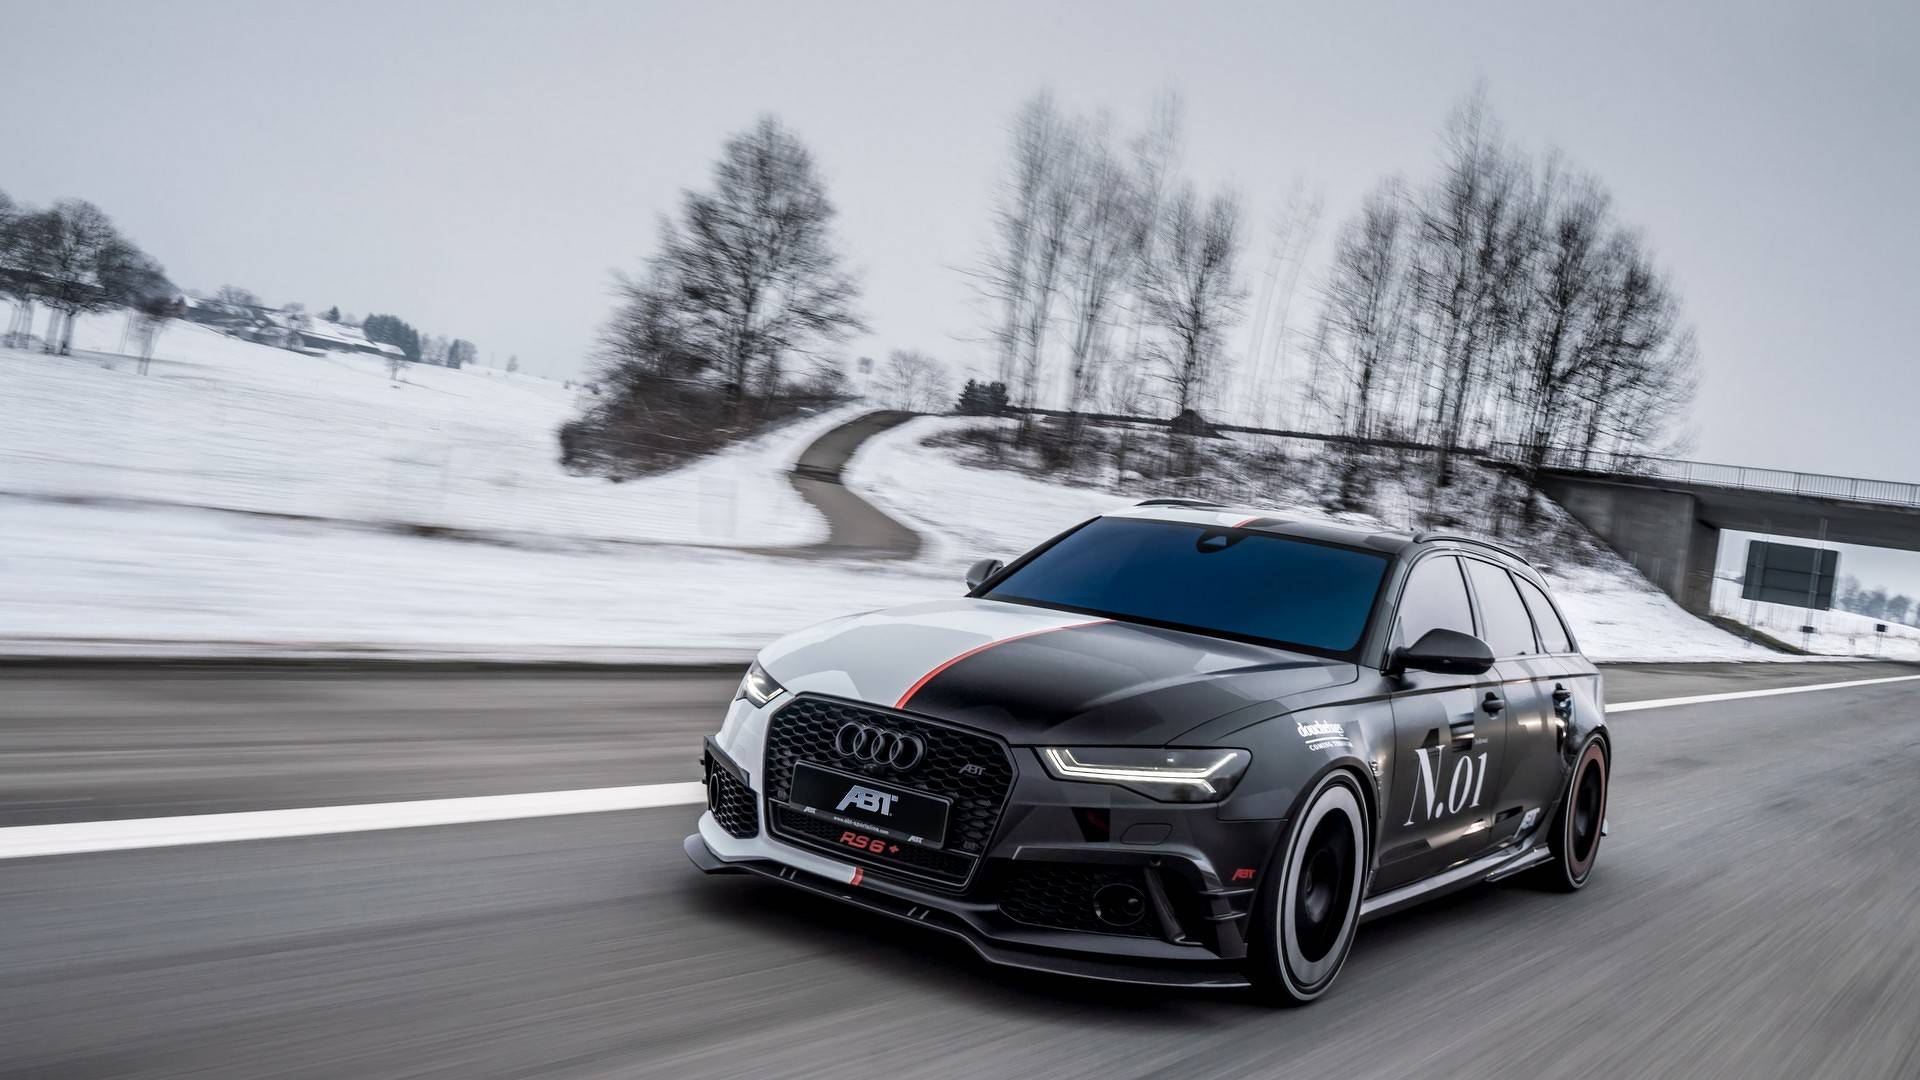 Jon Olsson S New 725 Hp Audi Rs6 Avant Is A Two Faced Super Wagon